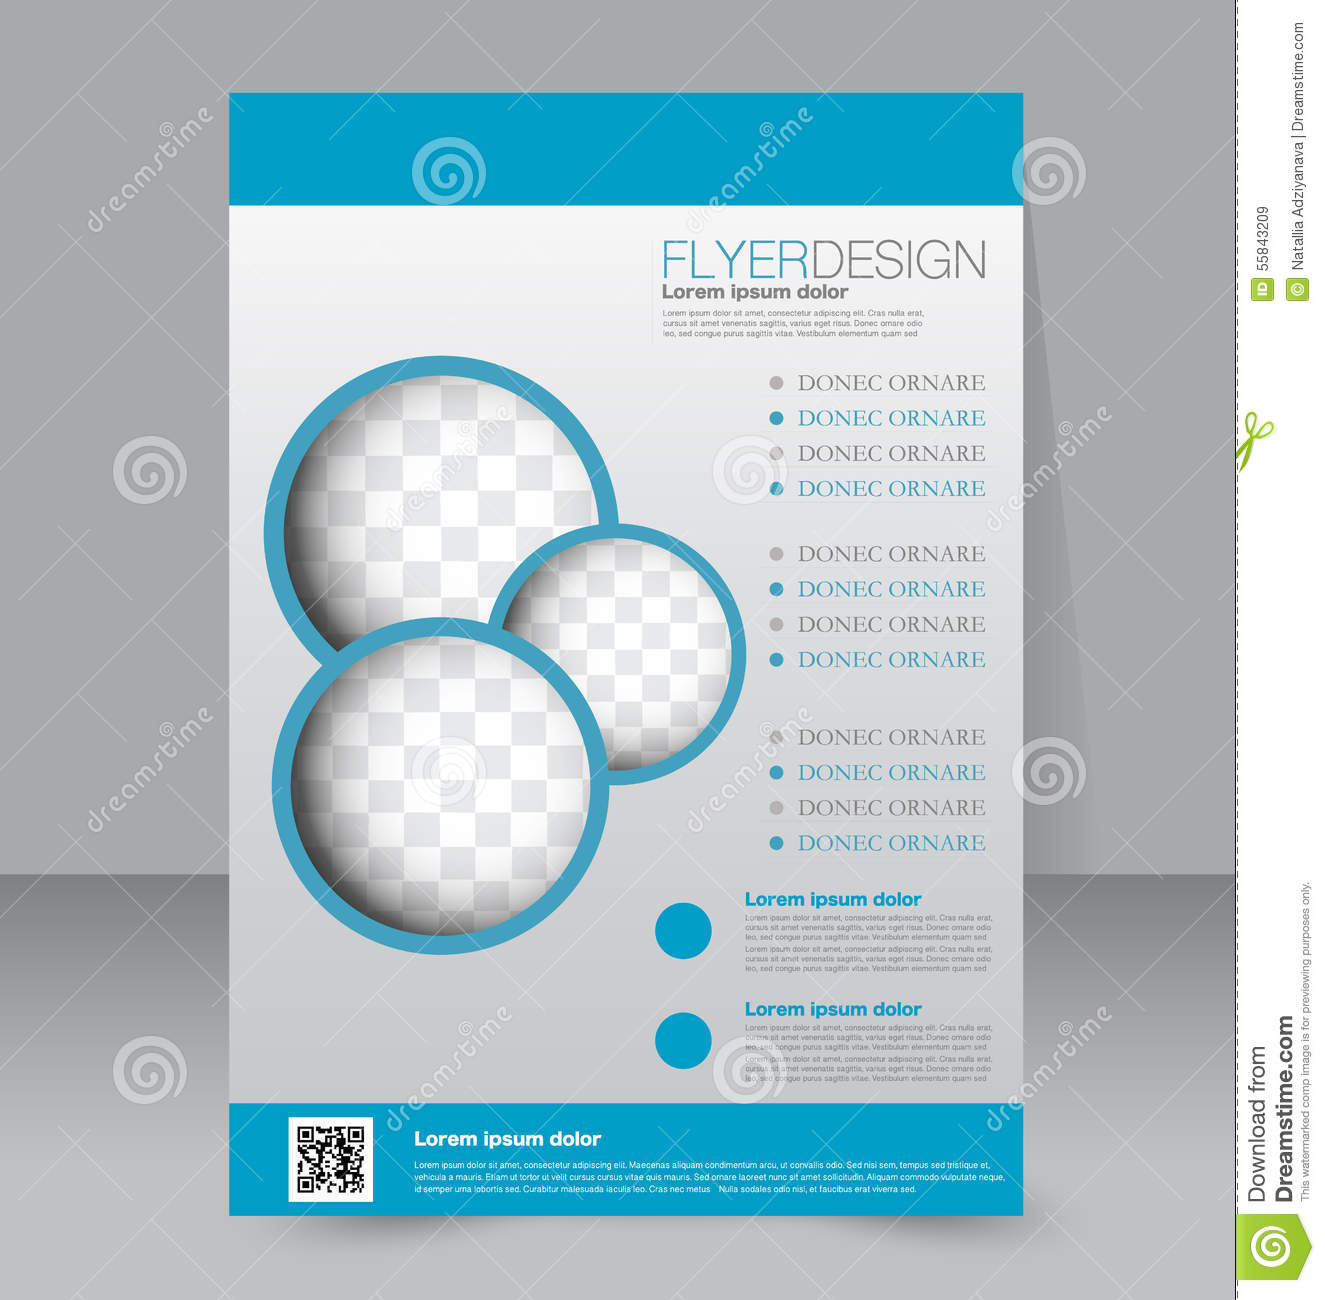 Flyer template business brochure editable a4 poster stock vector flyer template business brochure editable a4 poster book magazine accmission Images